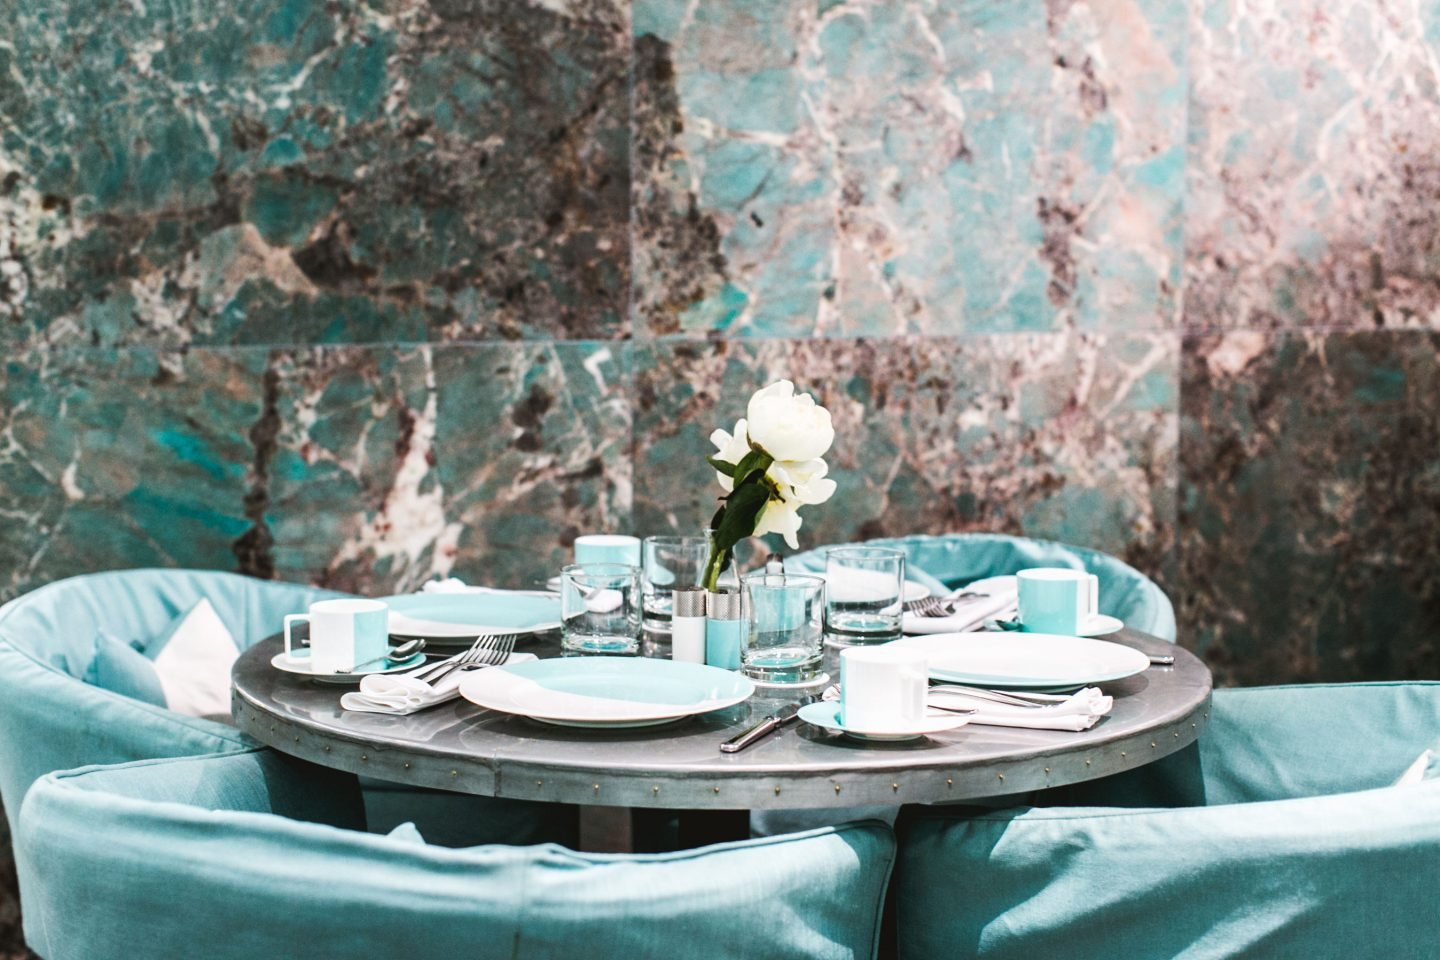 How You Can Have Breakfast At Tiffany's!